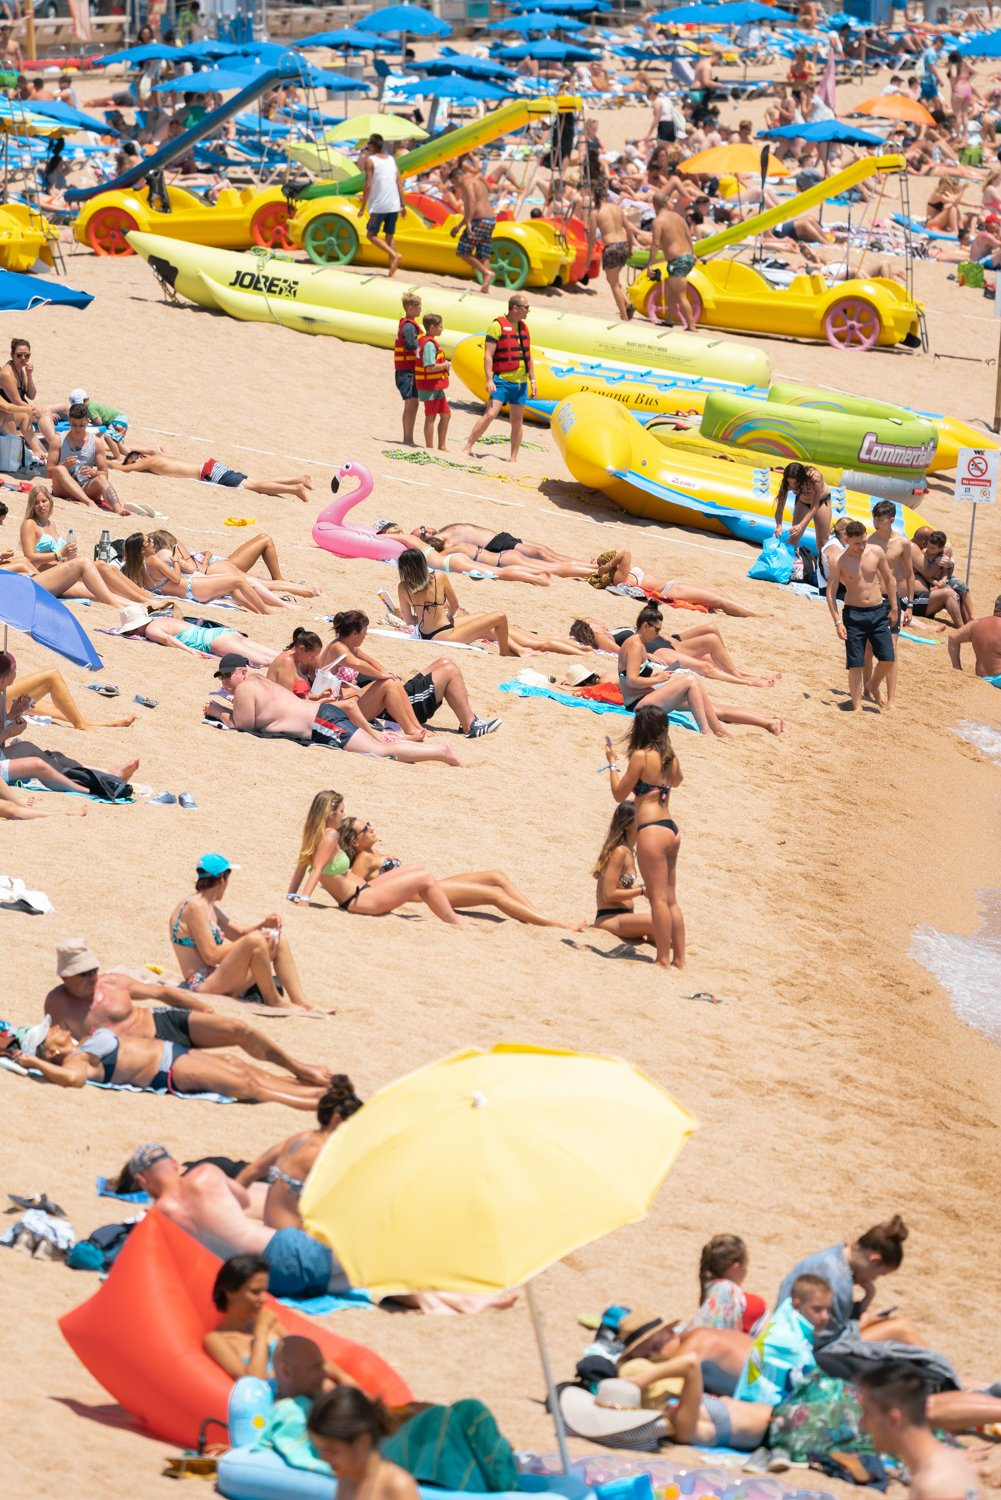 People lying on beach in Costa Brava